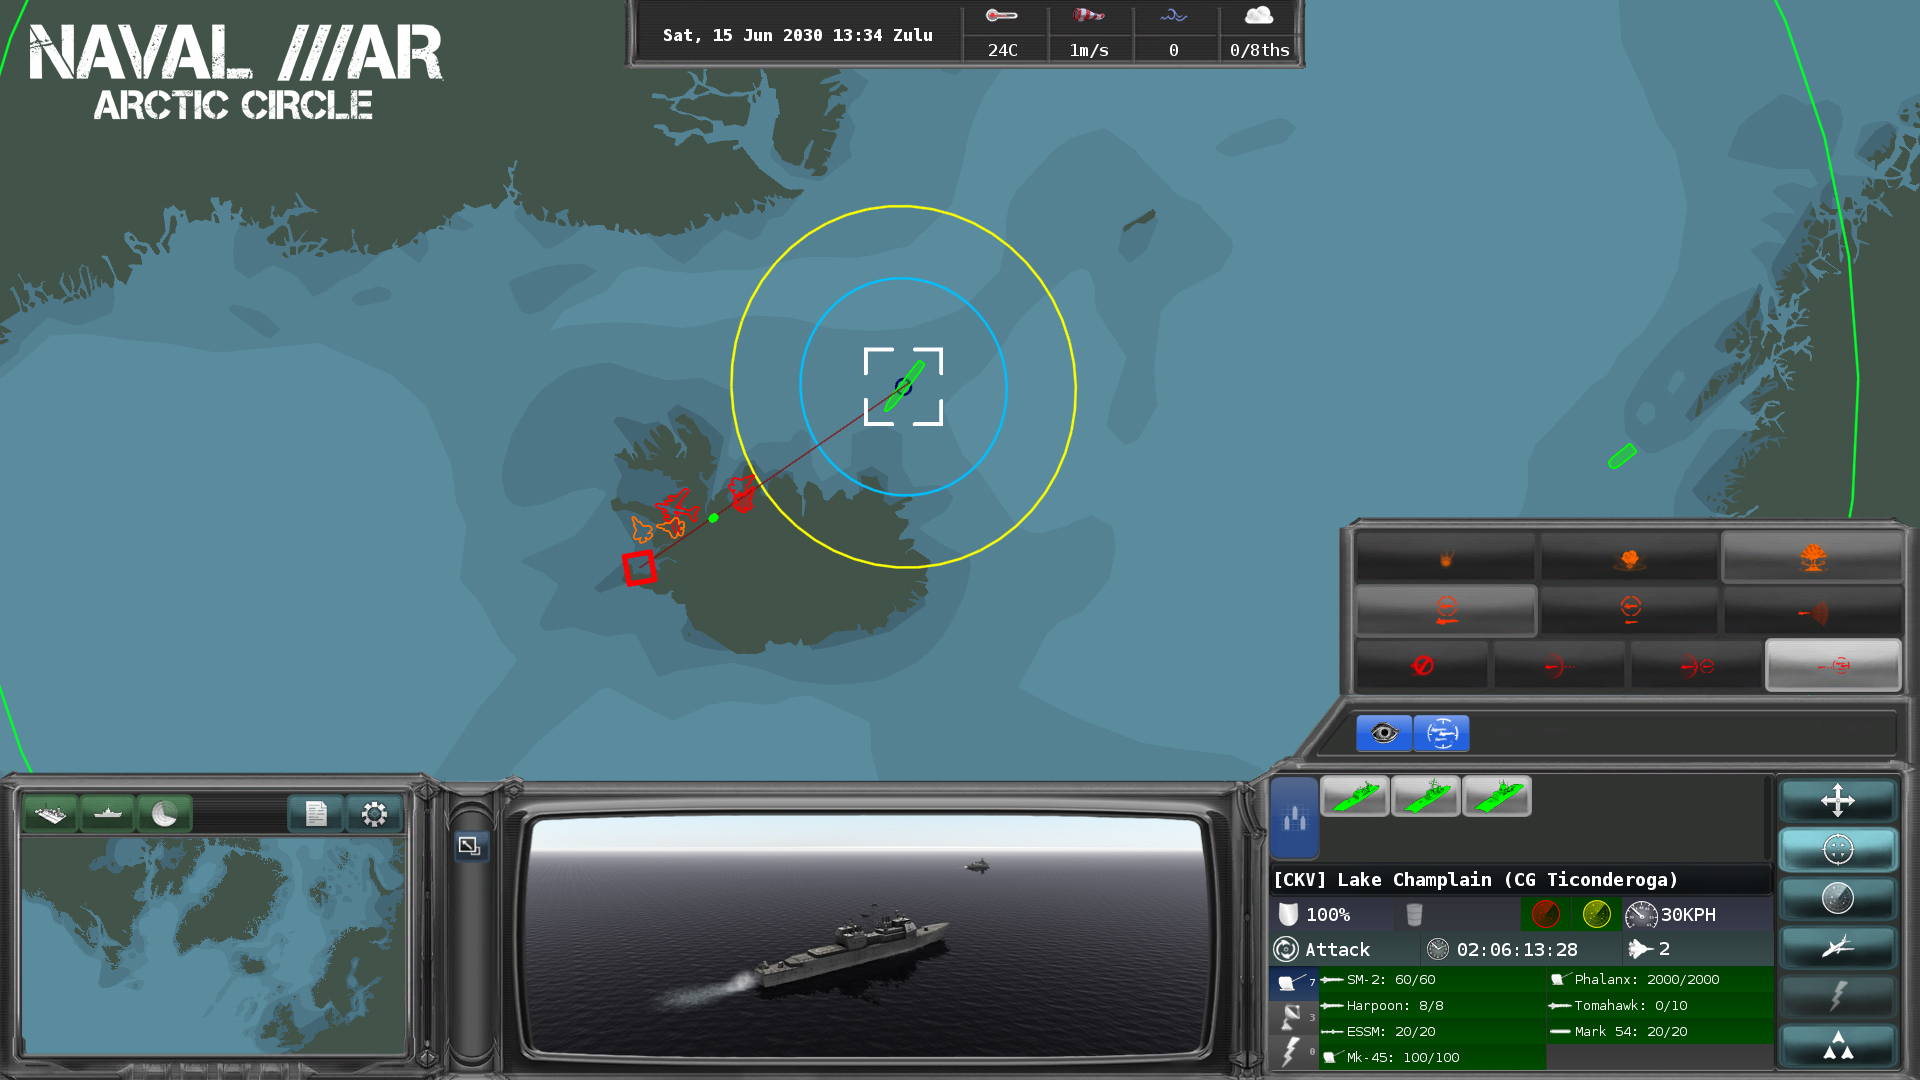 navalwar_arcticcircle_screens_gamescom_gui_battlepanel